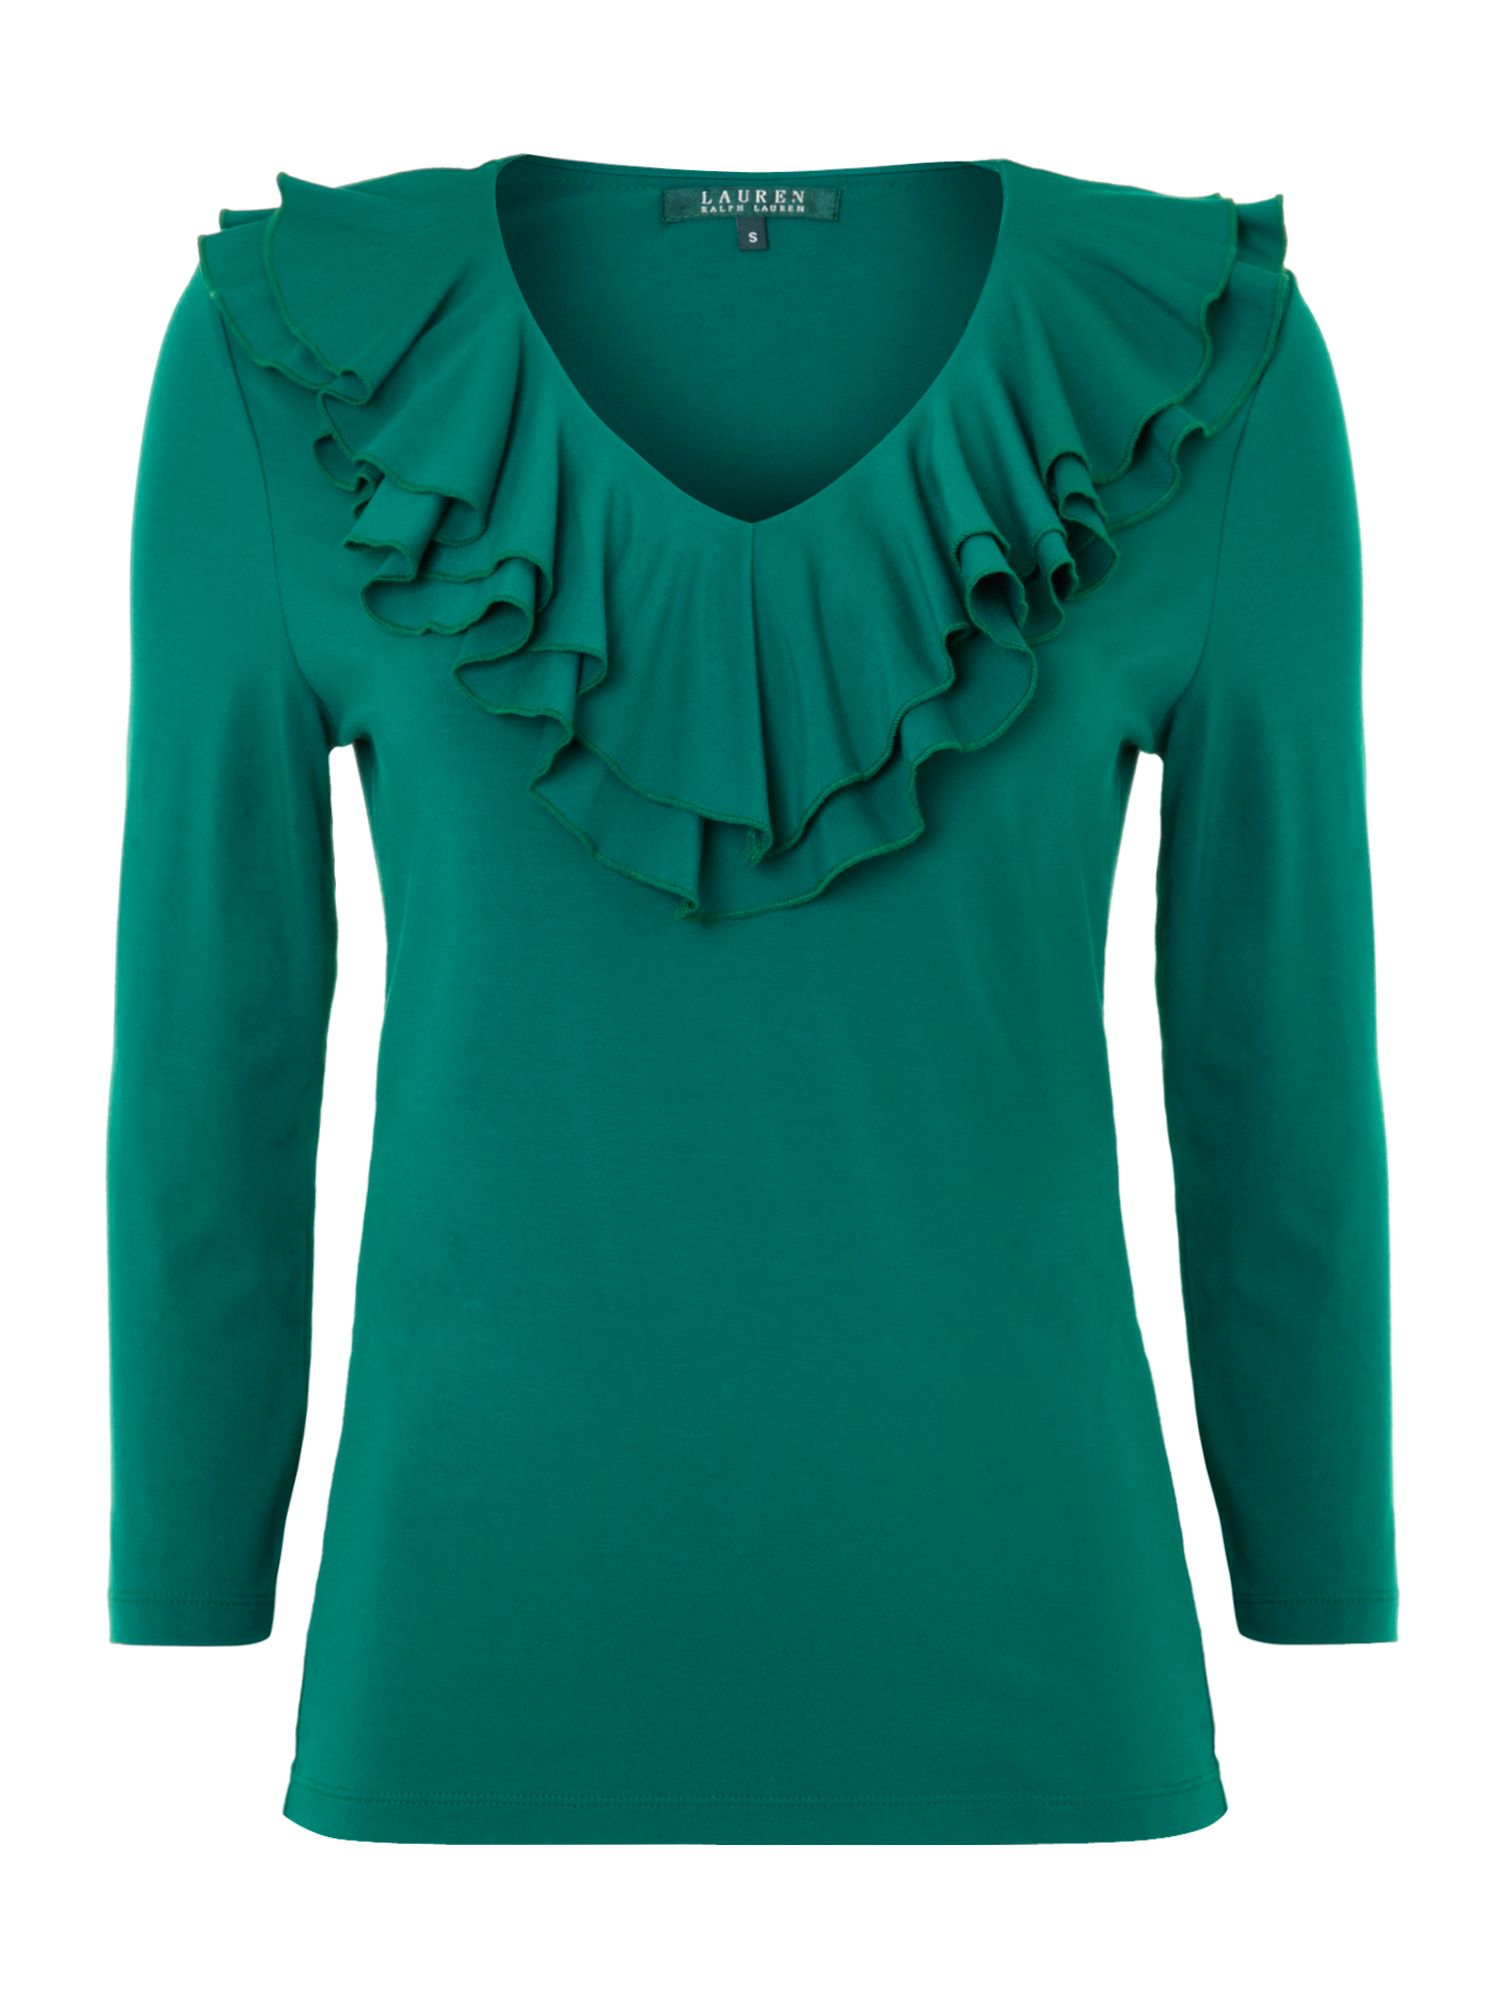 Ruffle front top with 3/4 sleeve